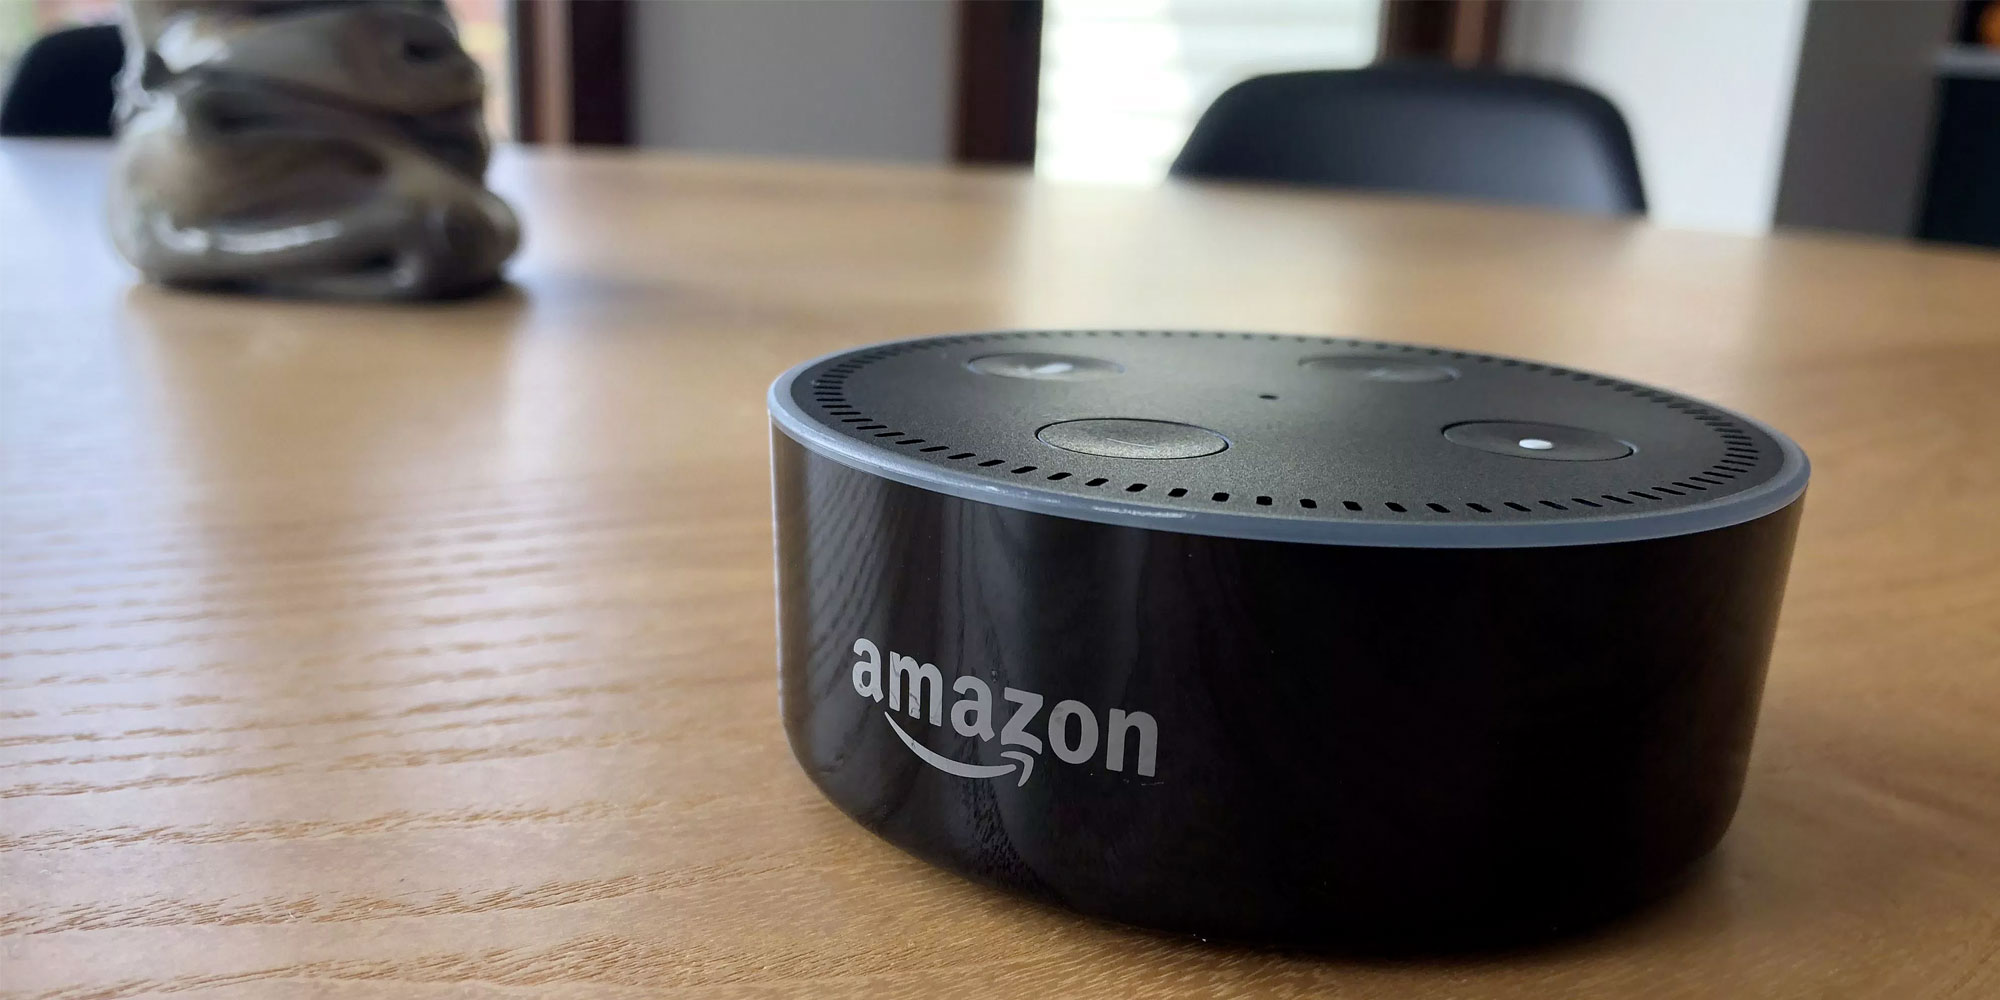 Amazon slated to launch at least 8 new devices with Alexa capabilities this year